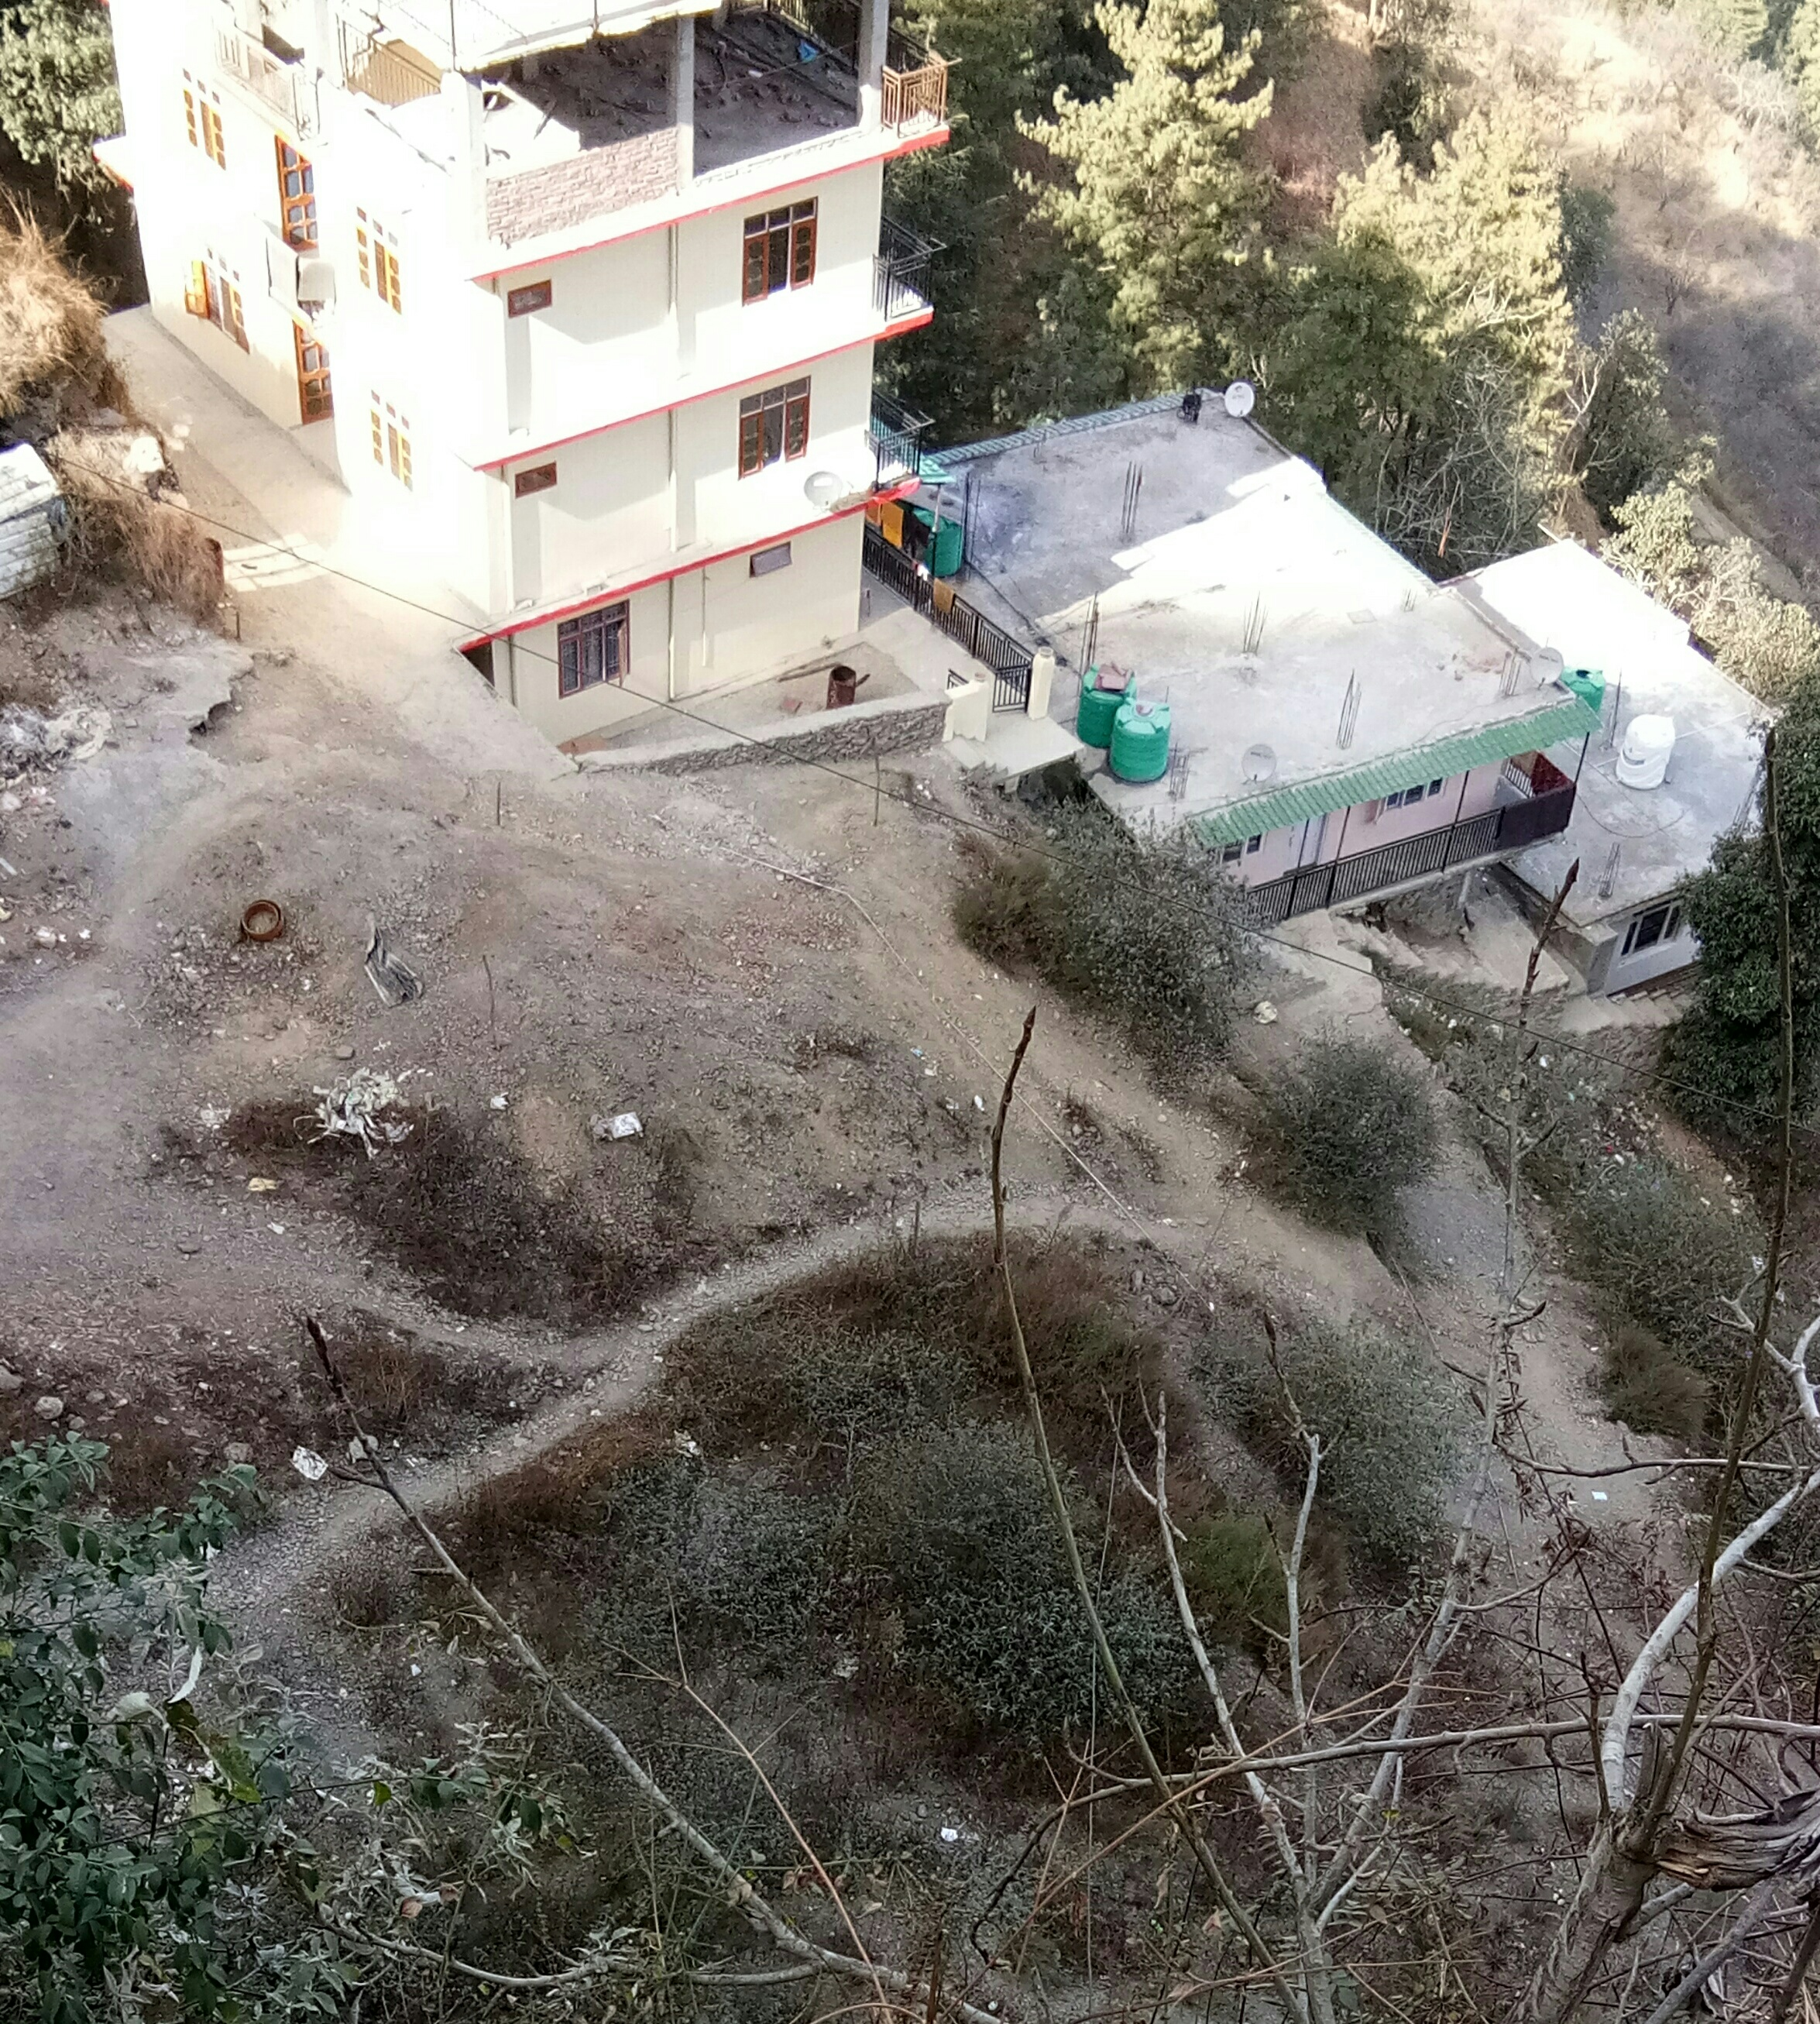 12 Biswa Plot for Sale at Sanjauli – Dhalli by pass Shimla —- Non drive — Distance from main road only 25m —- Residential plot —- 300m from Dhalli Chowk — Price – 75 lakhs